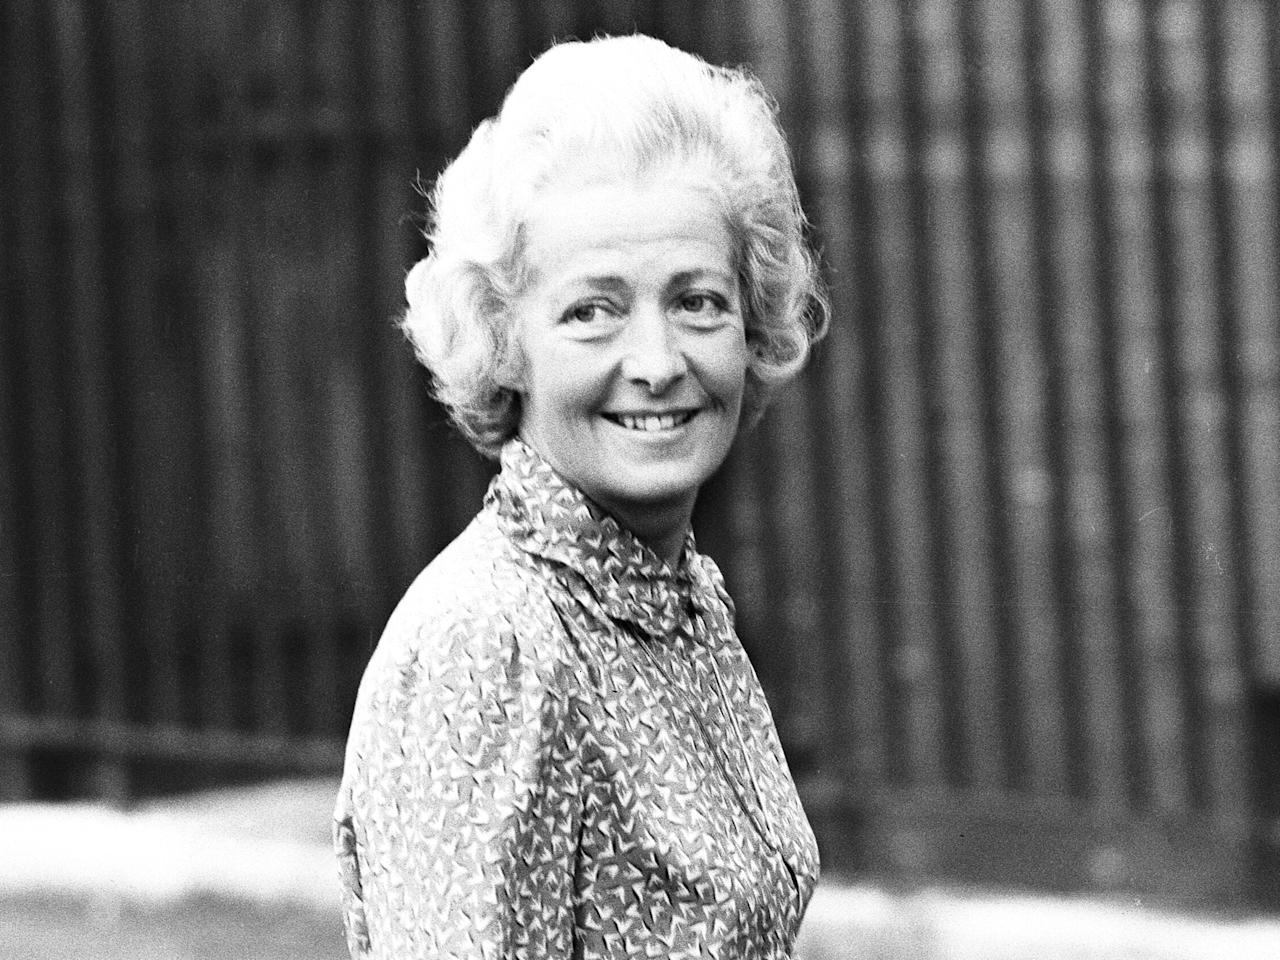 1967: Diana's mum Frances leaves her husband for wallpaper heir Peter Shand Kydd. Just six-years-old at the time, Diana stays with her dad.